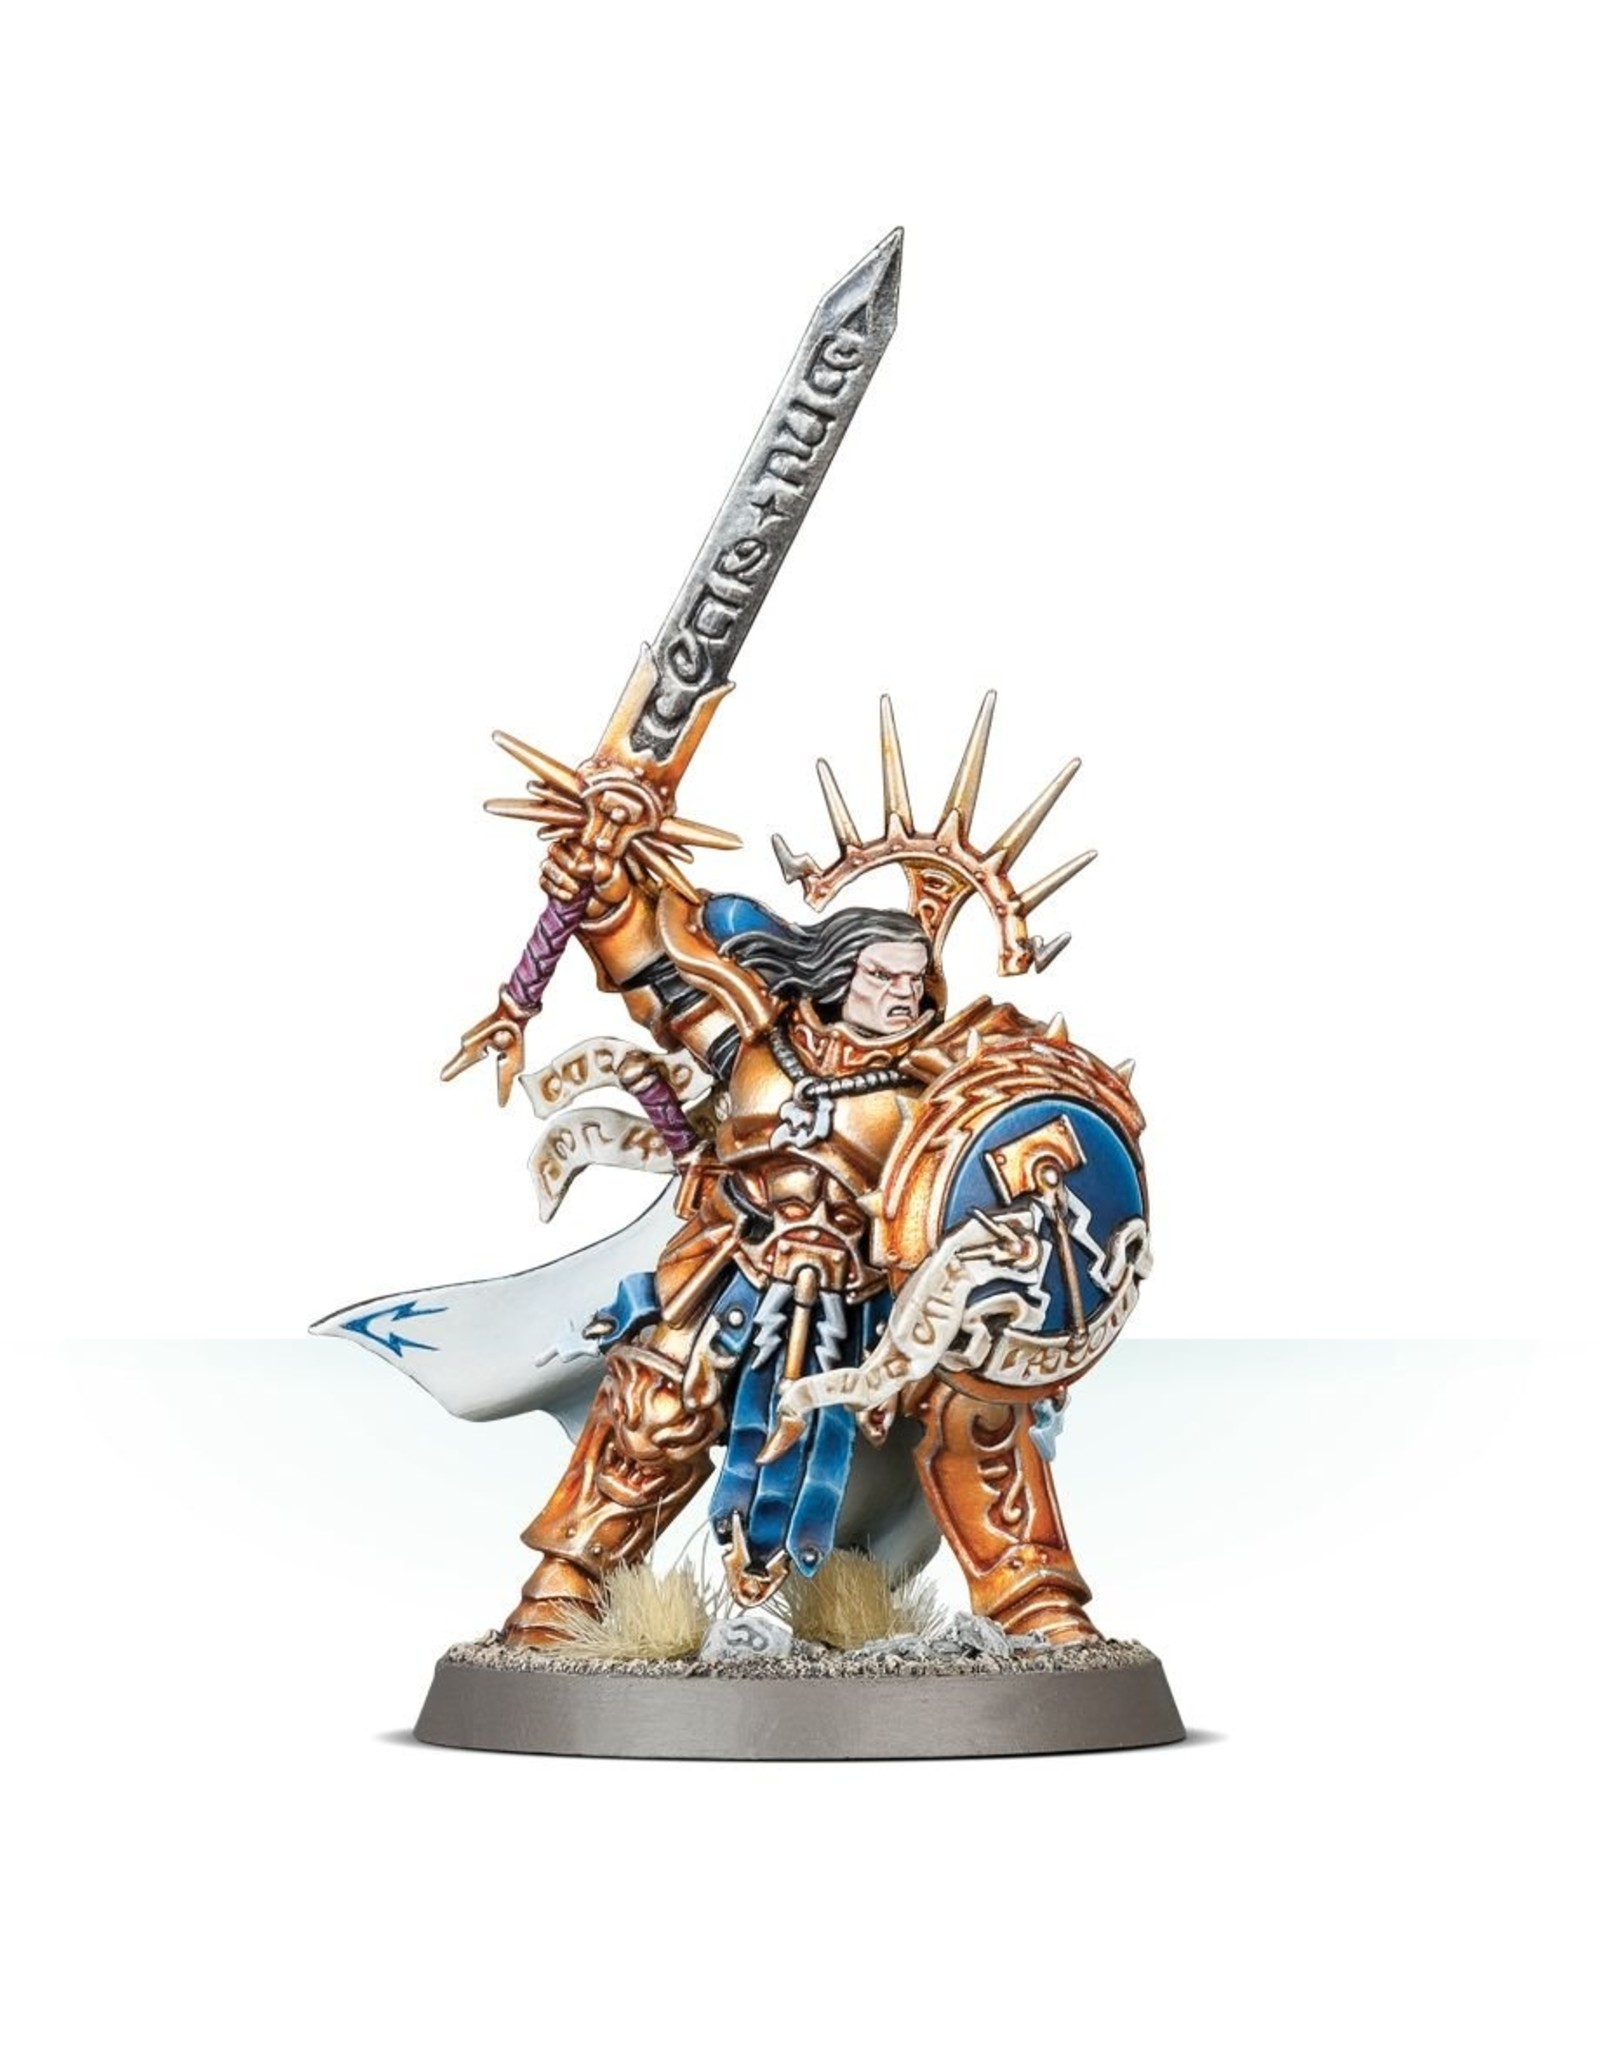 Games Workshop Stormcast Eternals: Lord Celestant Gavriel Sureheart